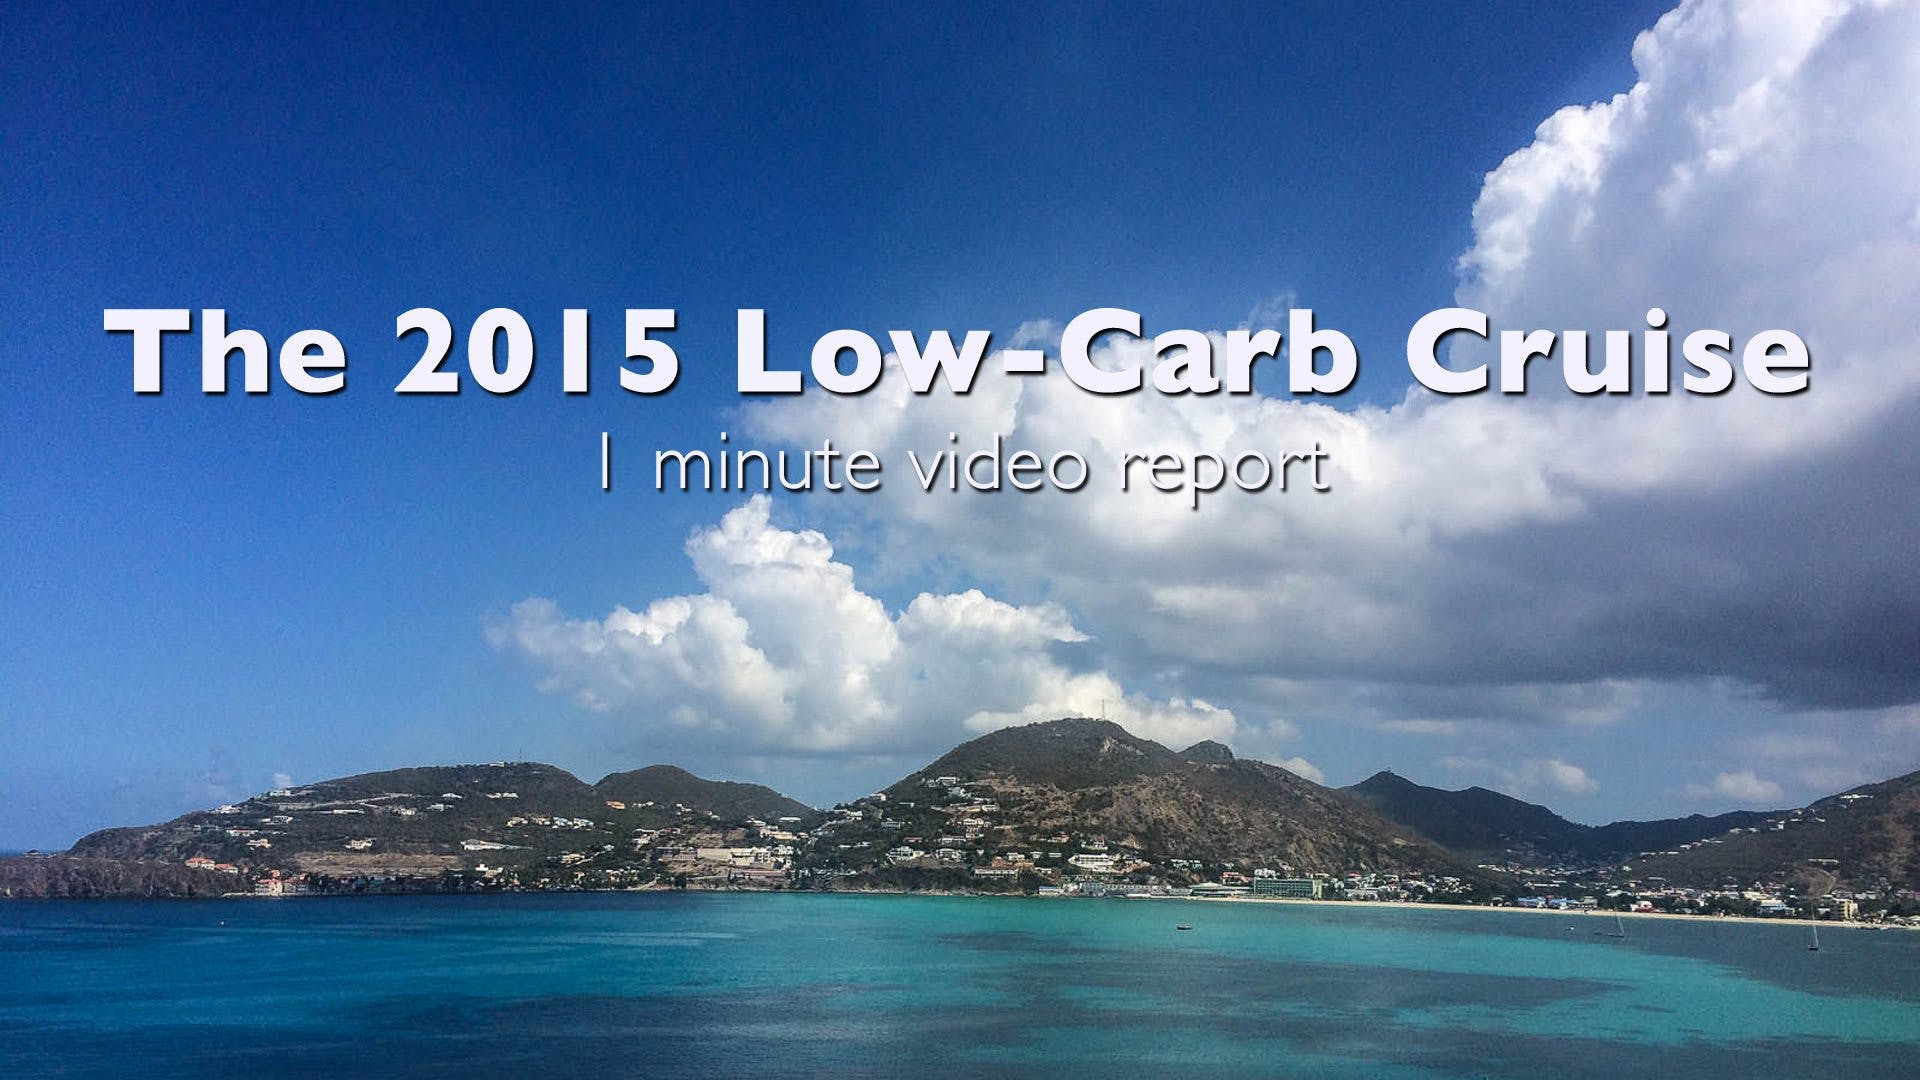 The 2015 Low-Carb Cruise – Brief Video Report